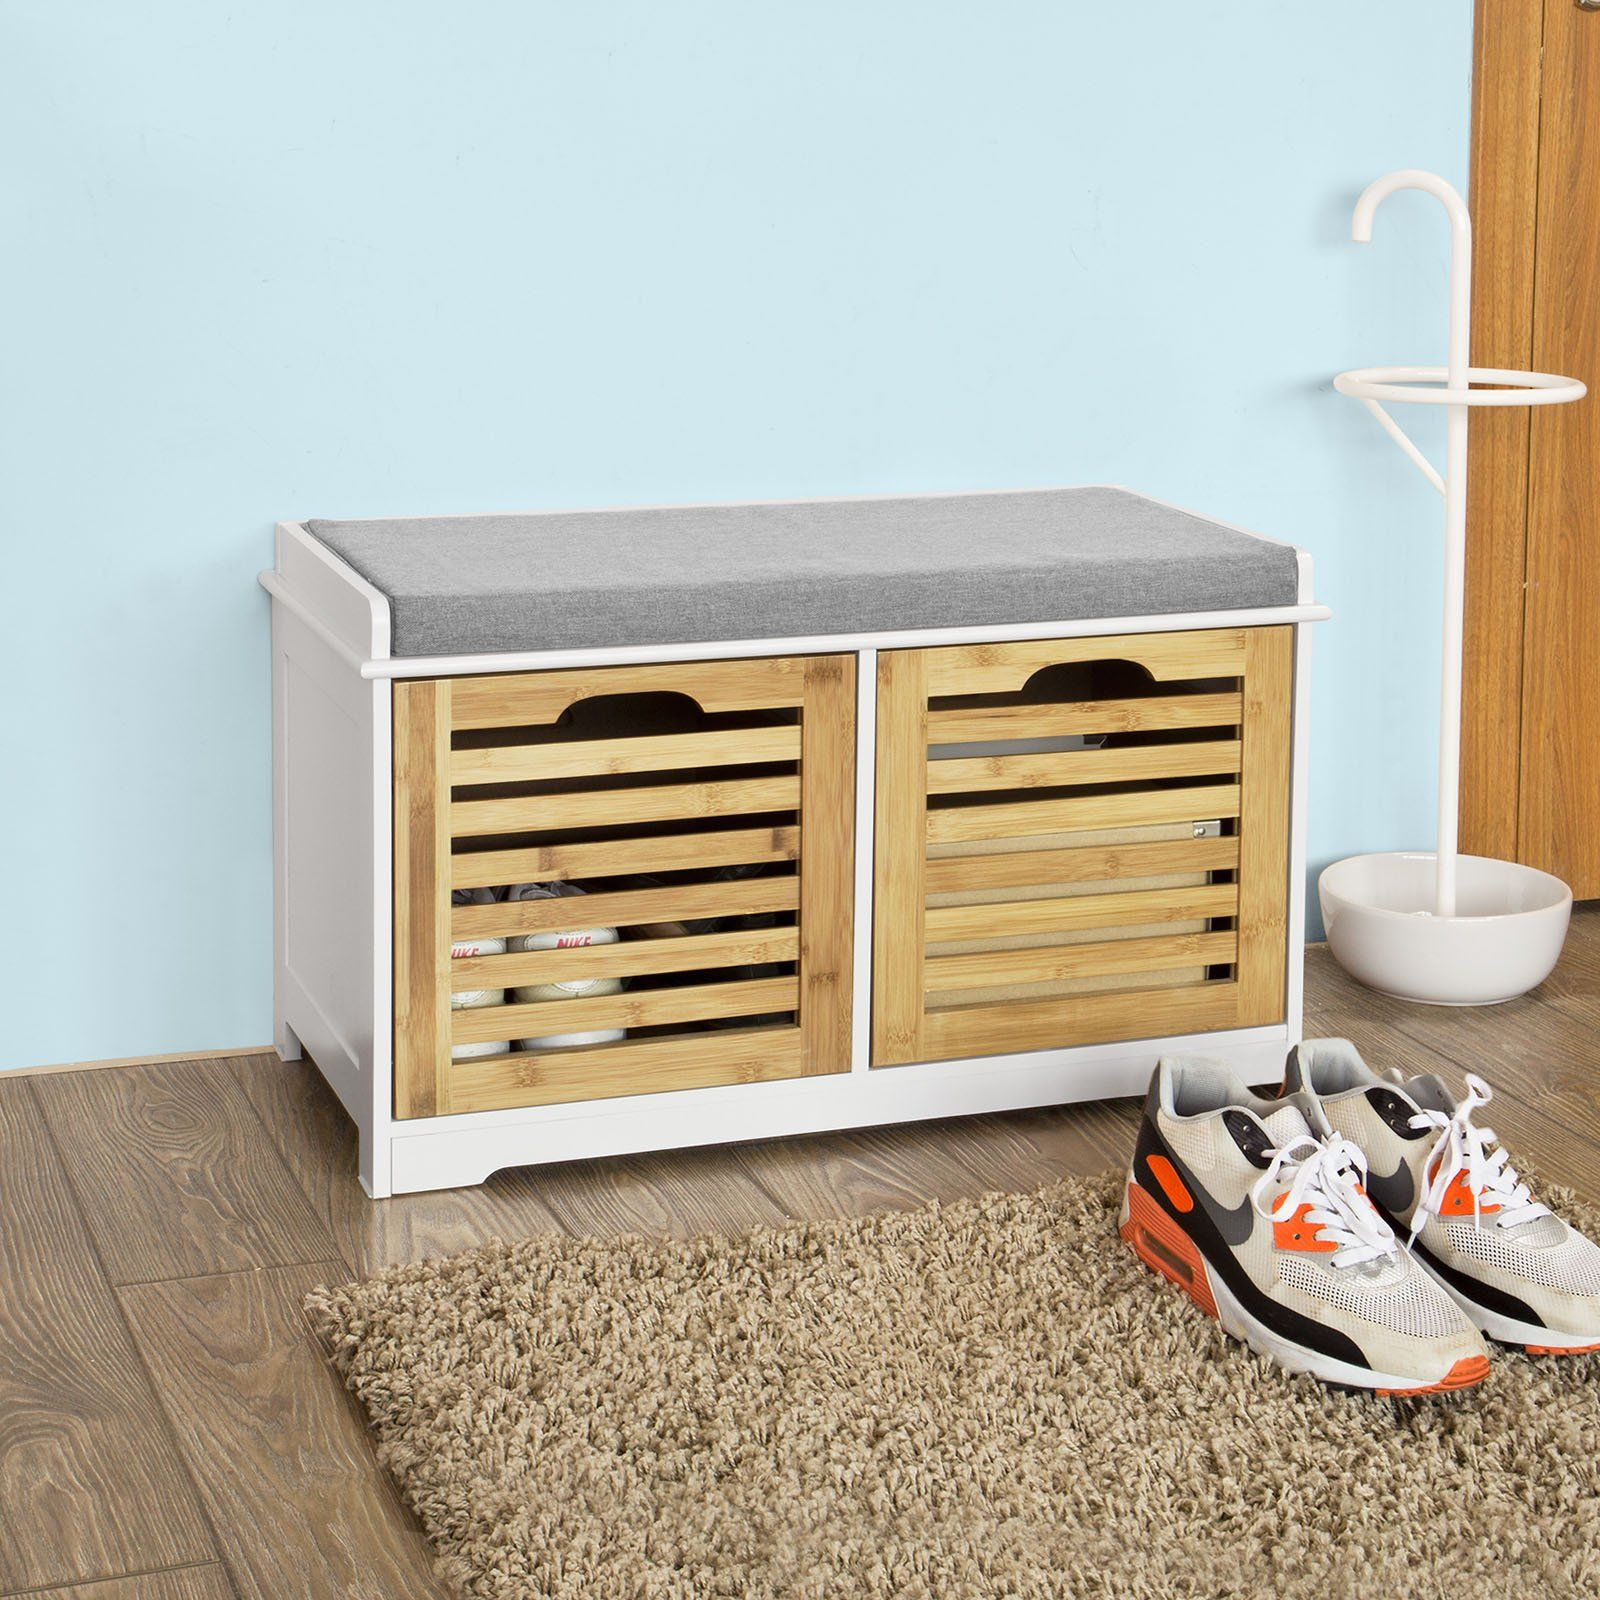 Remarkable Haotian Fsr23 K Wn Storage Bench With 2 Drawers Padded Pdpeps Interior Chair Design Pdpepsorg